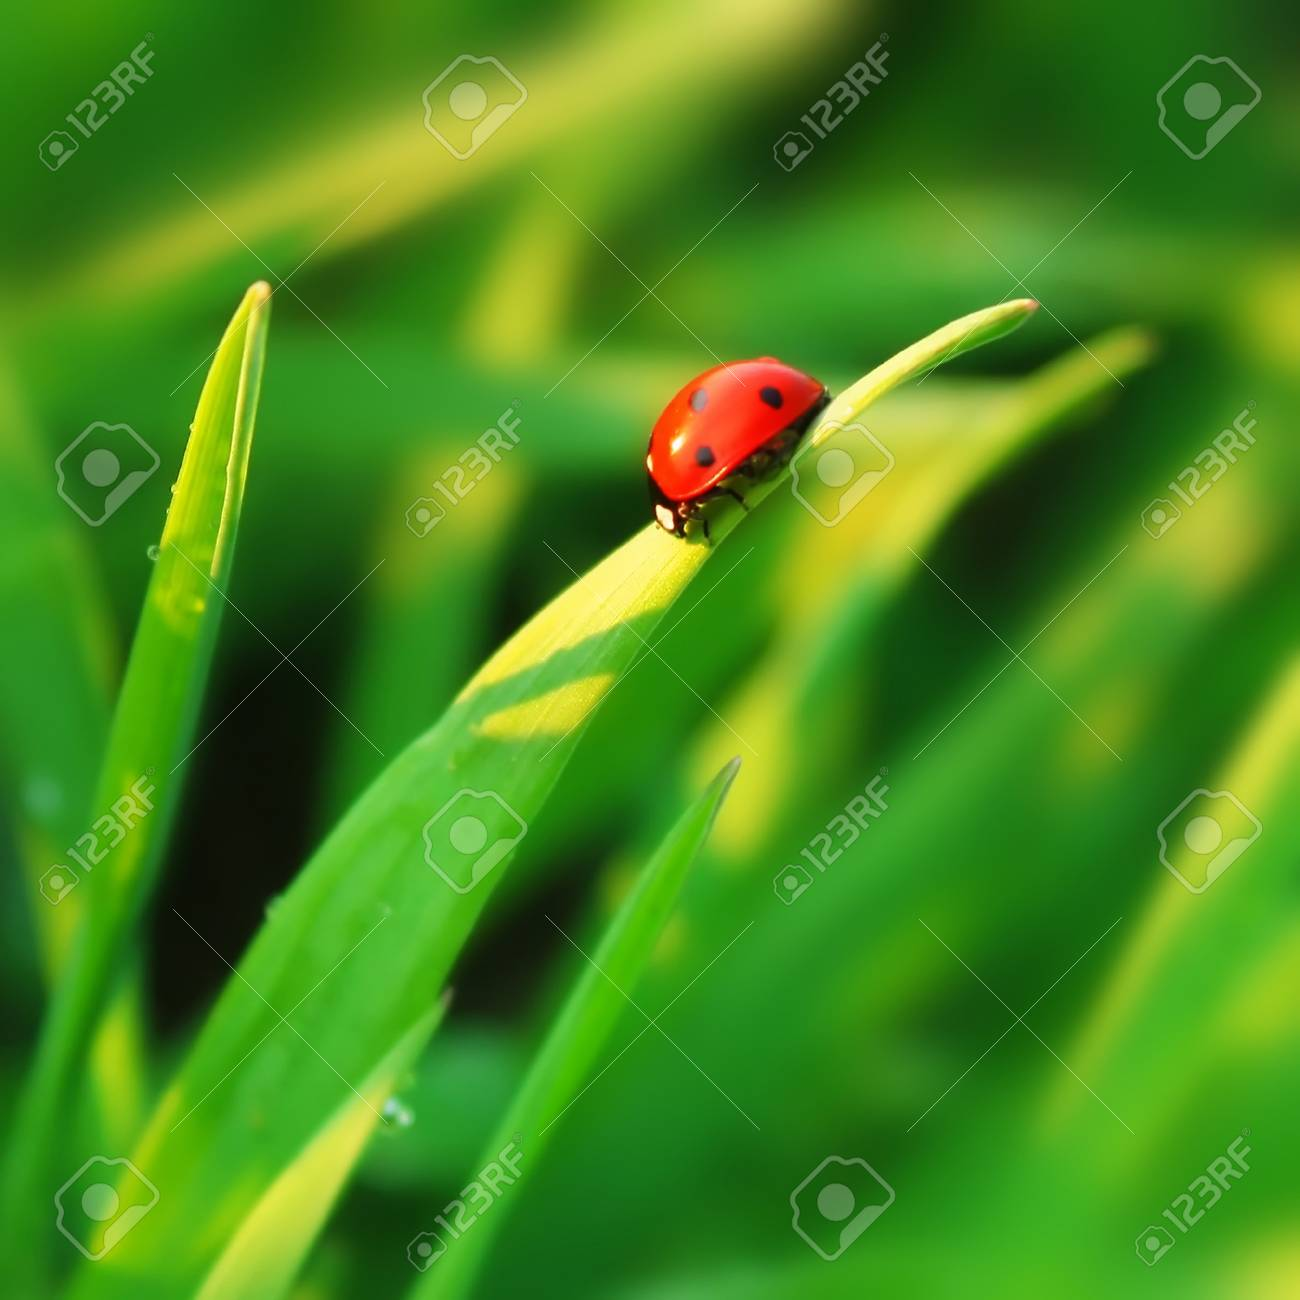 Ladybird on grass blade Stock Photo - 7583097